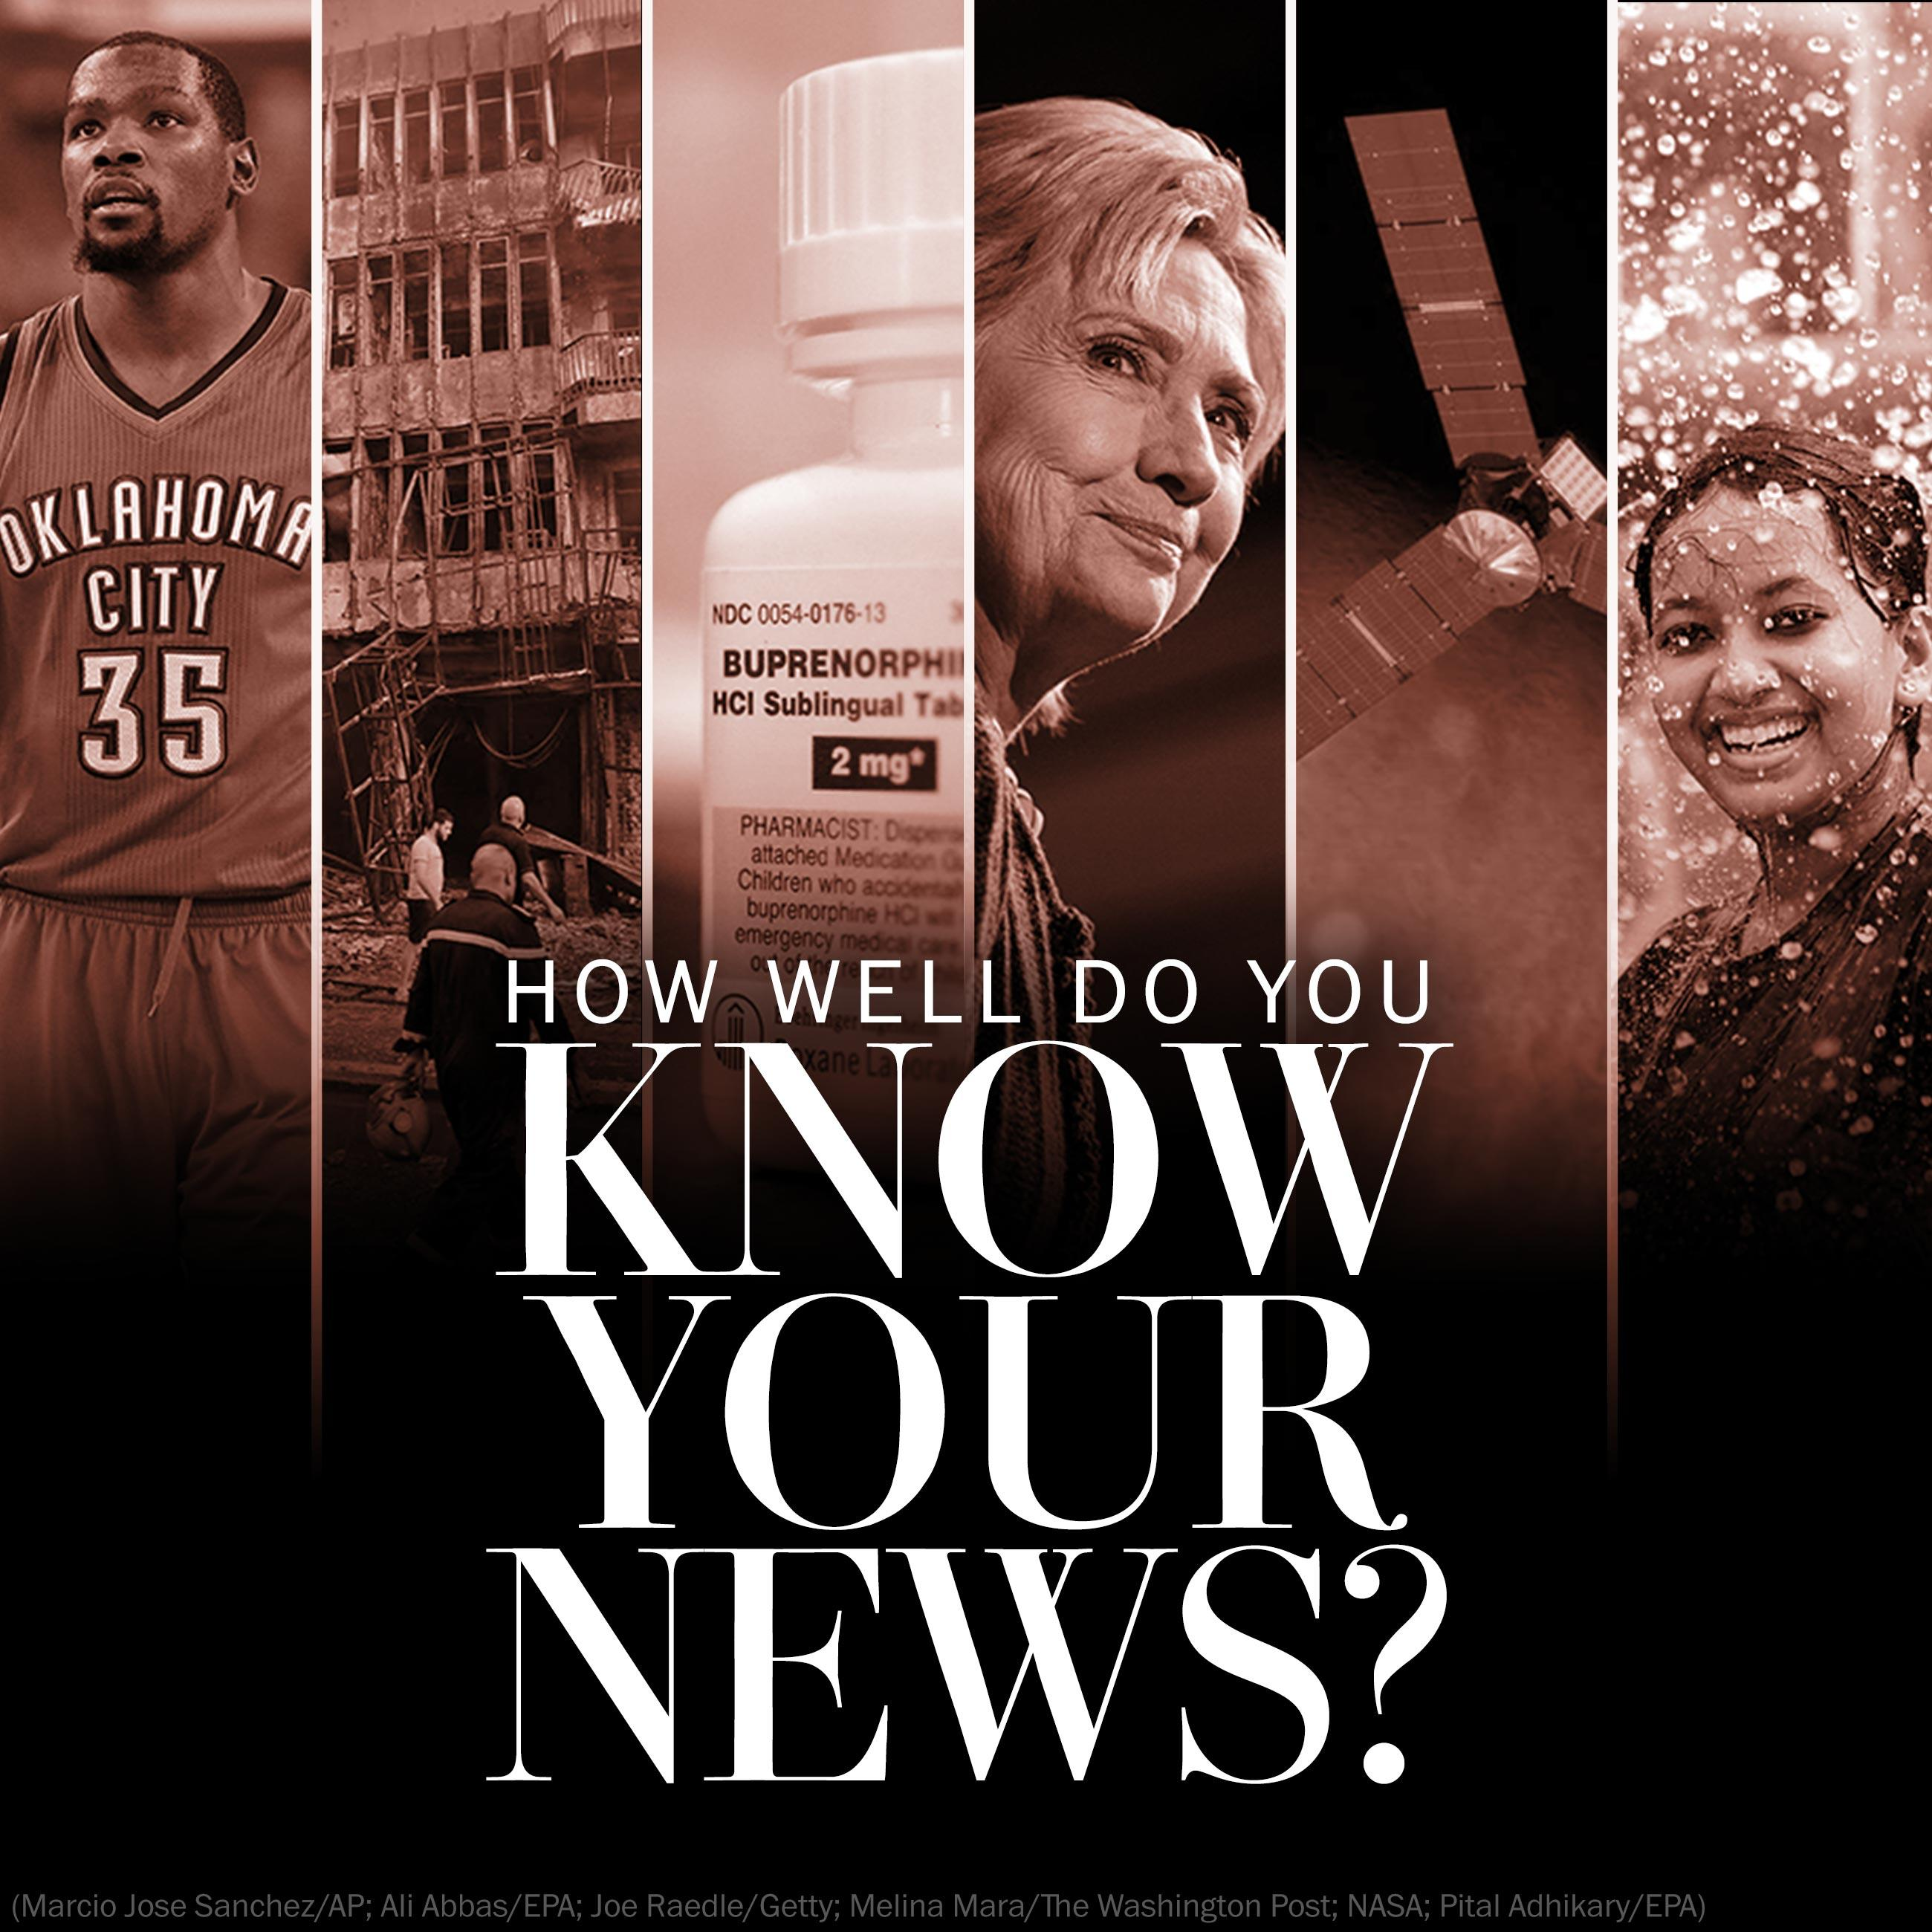 Quiz: Do you know your news?